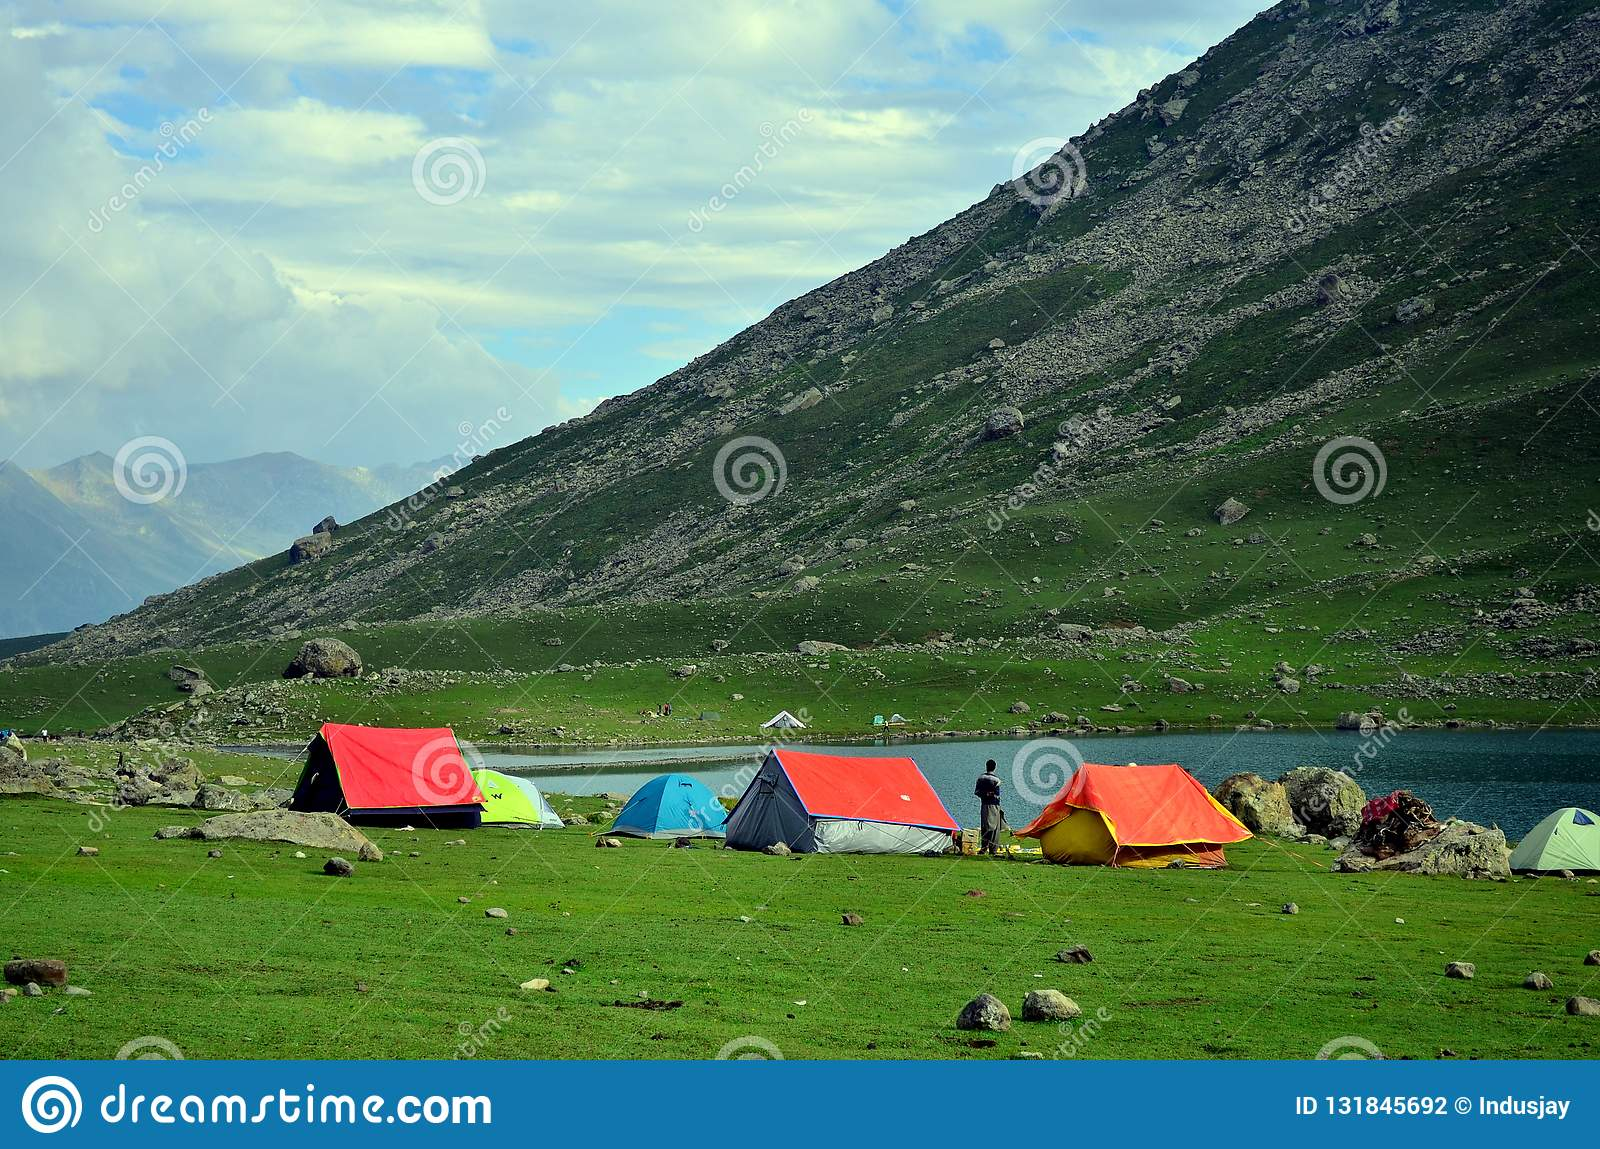 Camping tents at the Nundkol lake in Sonamarg, Kashmir, India